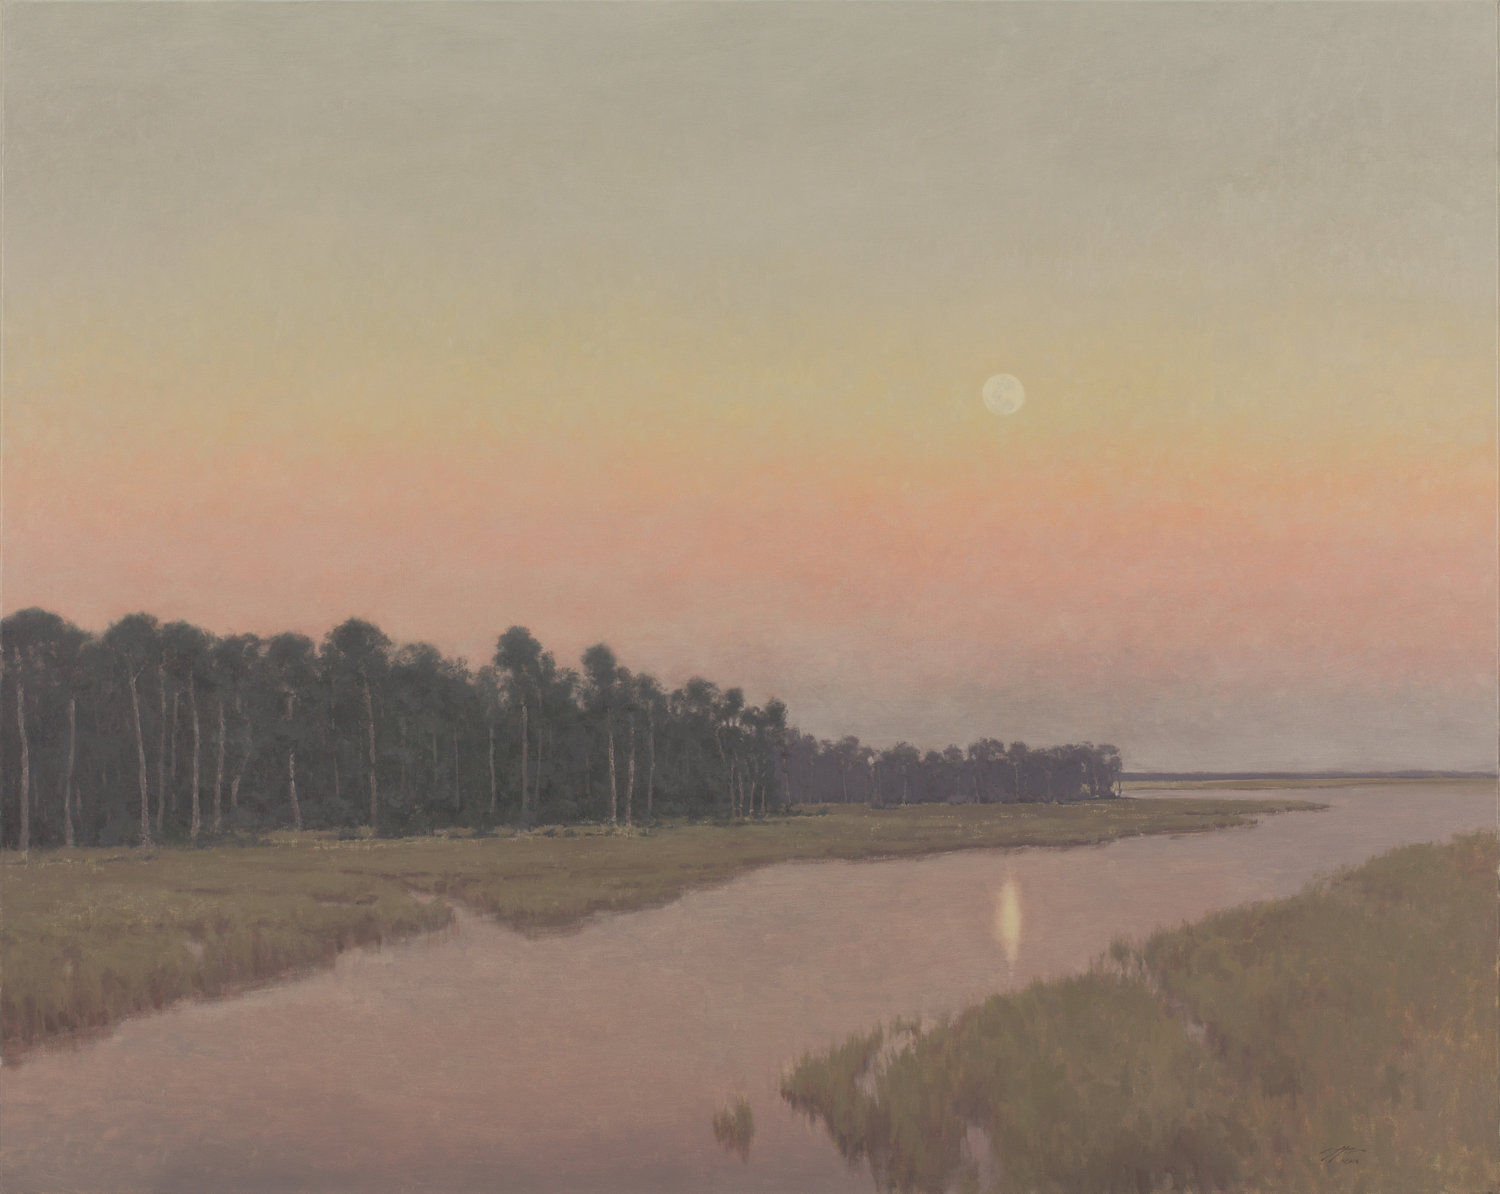 """Moonrise on the Marsh"" by Matthew Cutter. Oil on linen, 48x60."